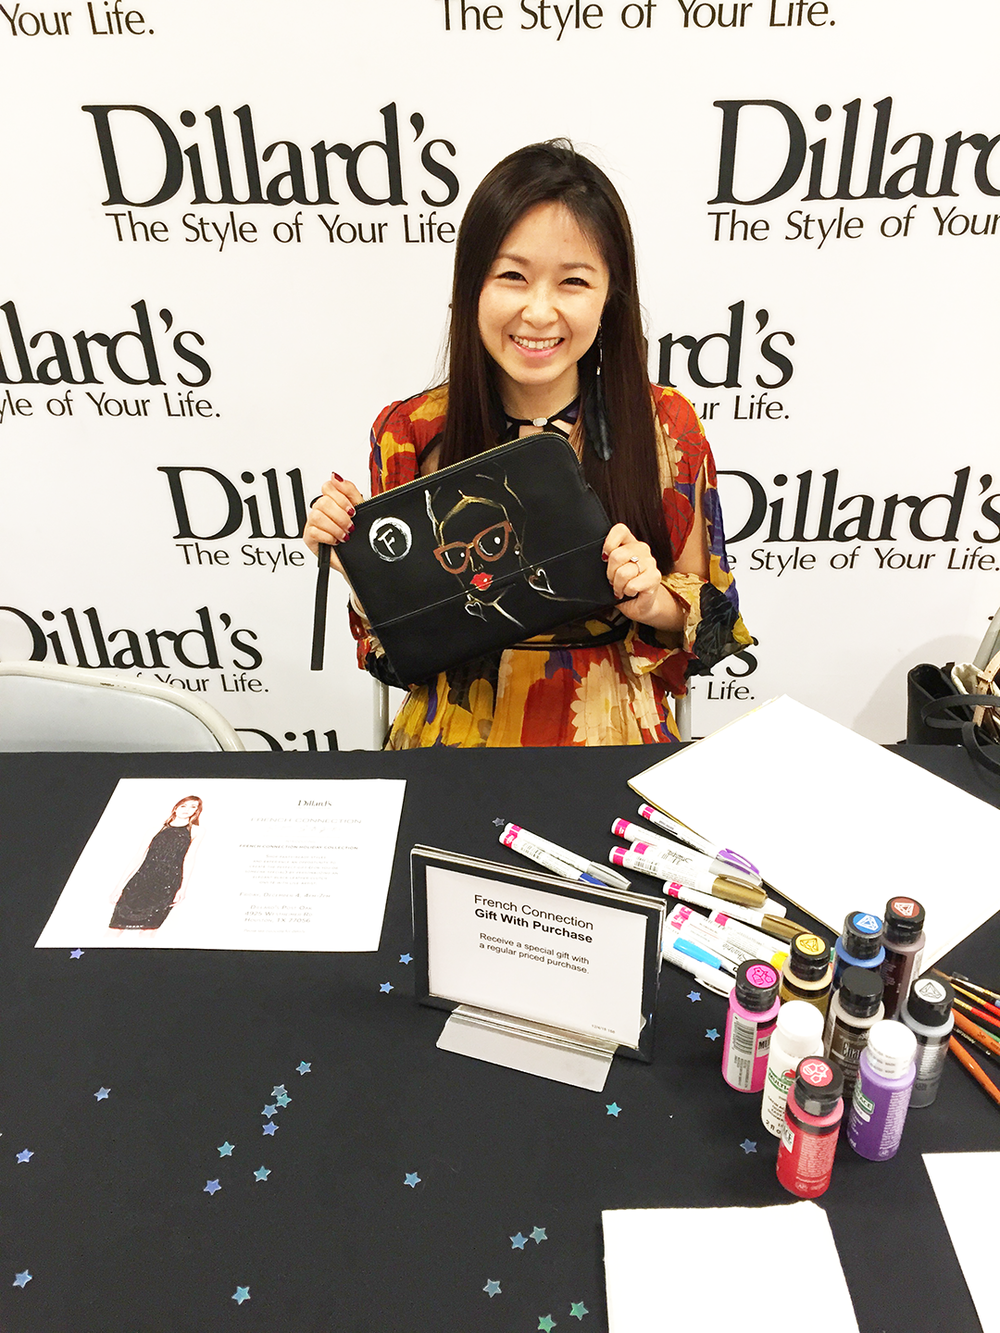 Fashion-Illustrator-Rongrong-DeVoe-collaboration-with-French-Connection-at-Dillard's-Houston-1